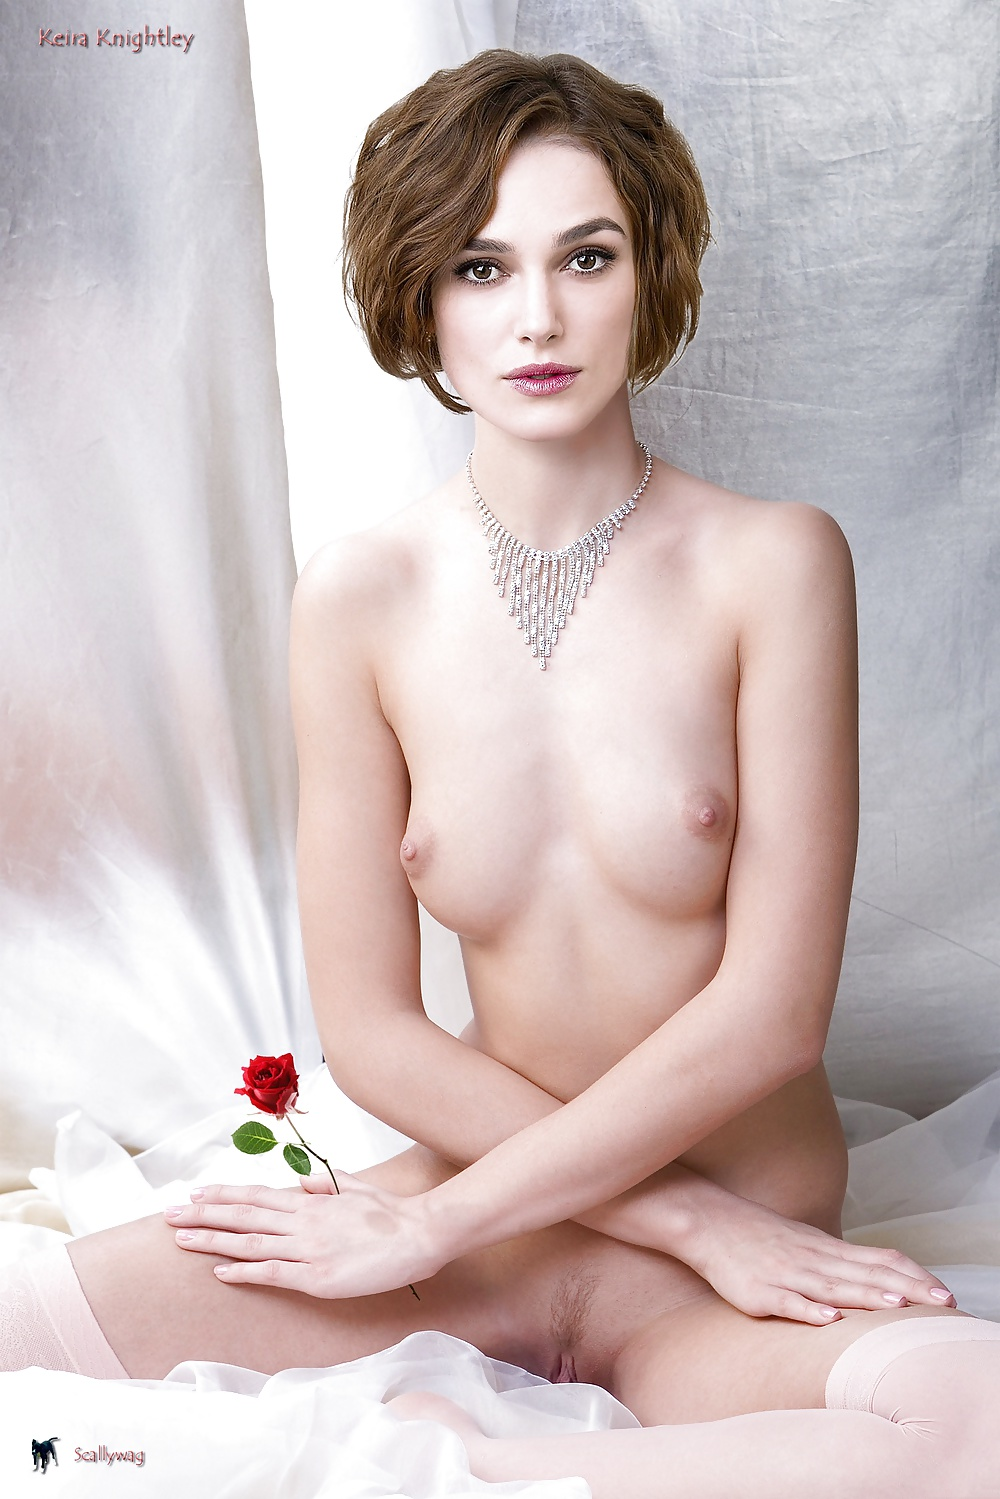 Keira knightley the fappening banned sex tapes